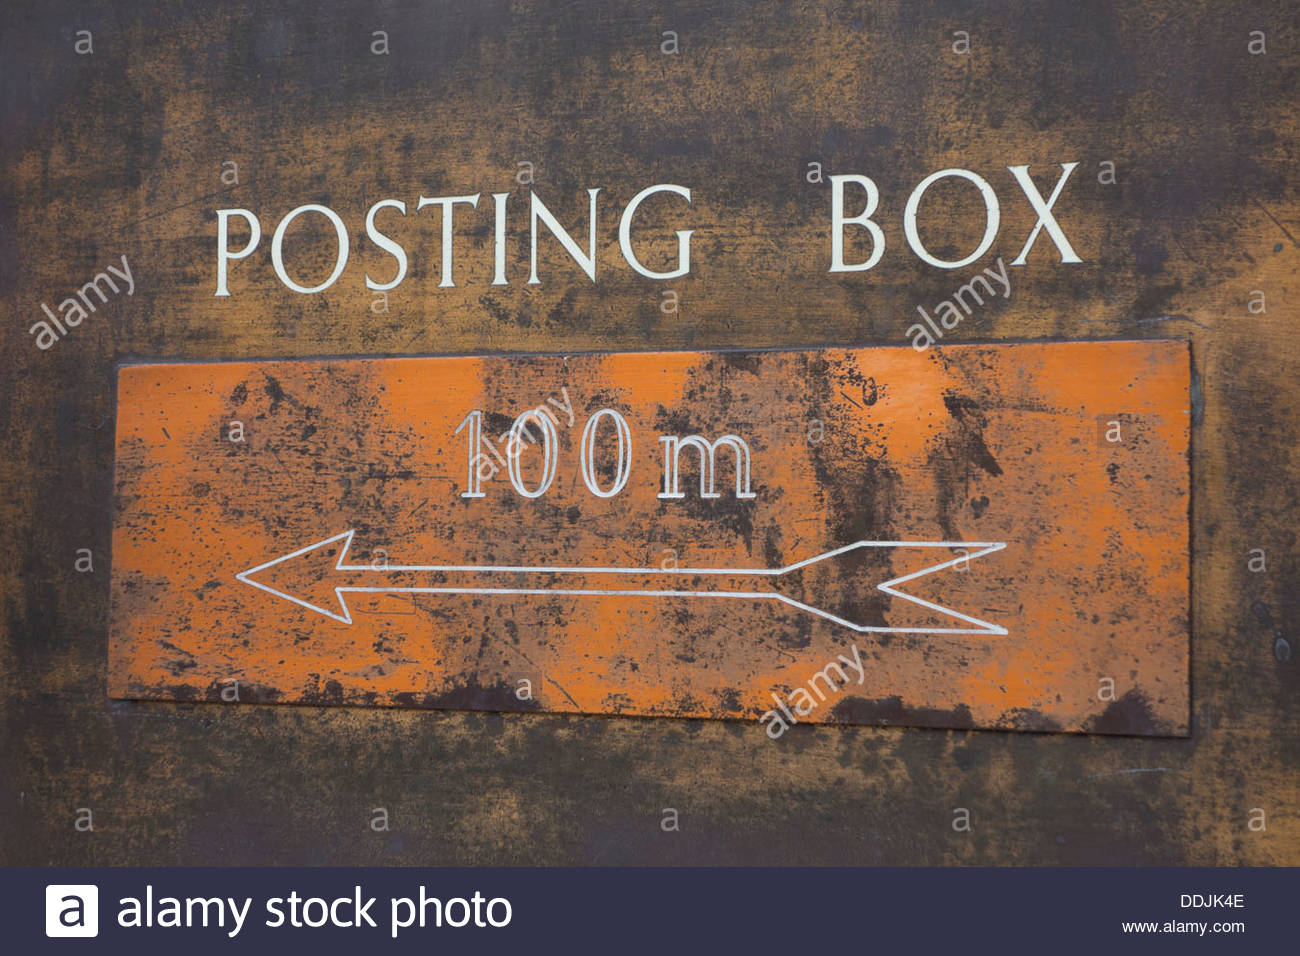 Sign to posting box 100 metres. Stock Photo